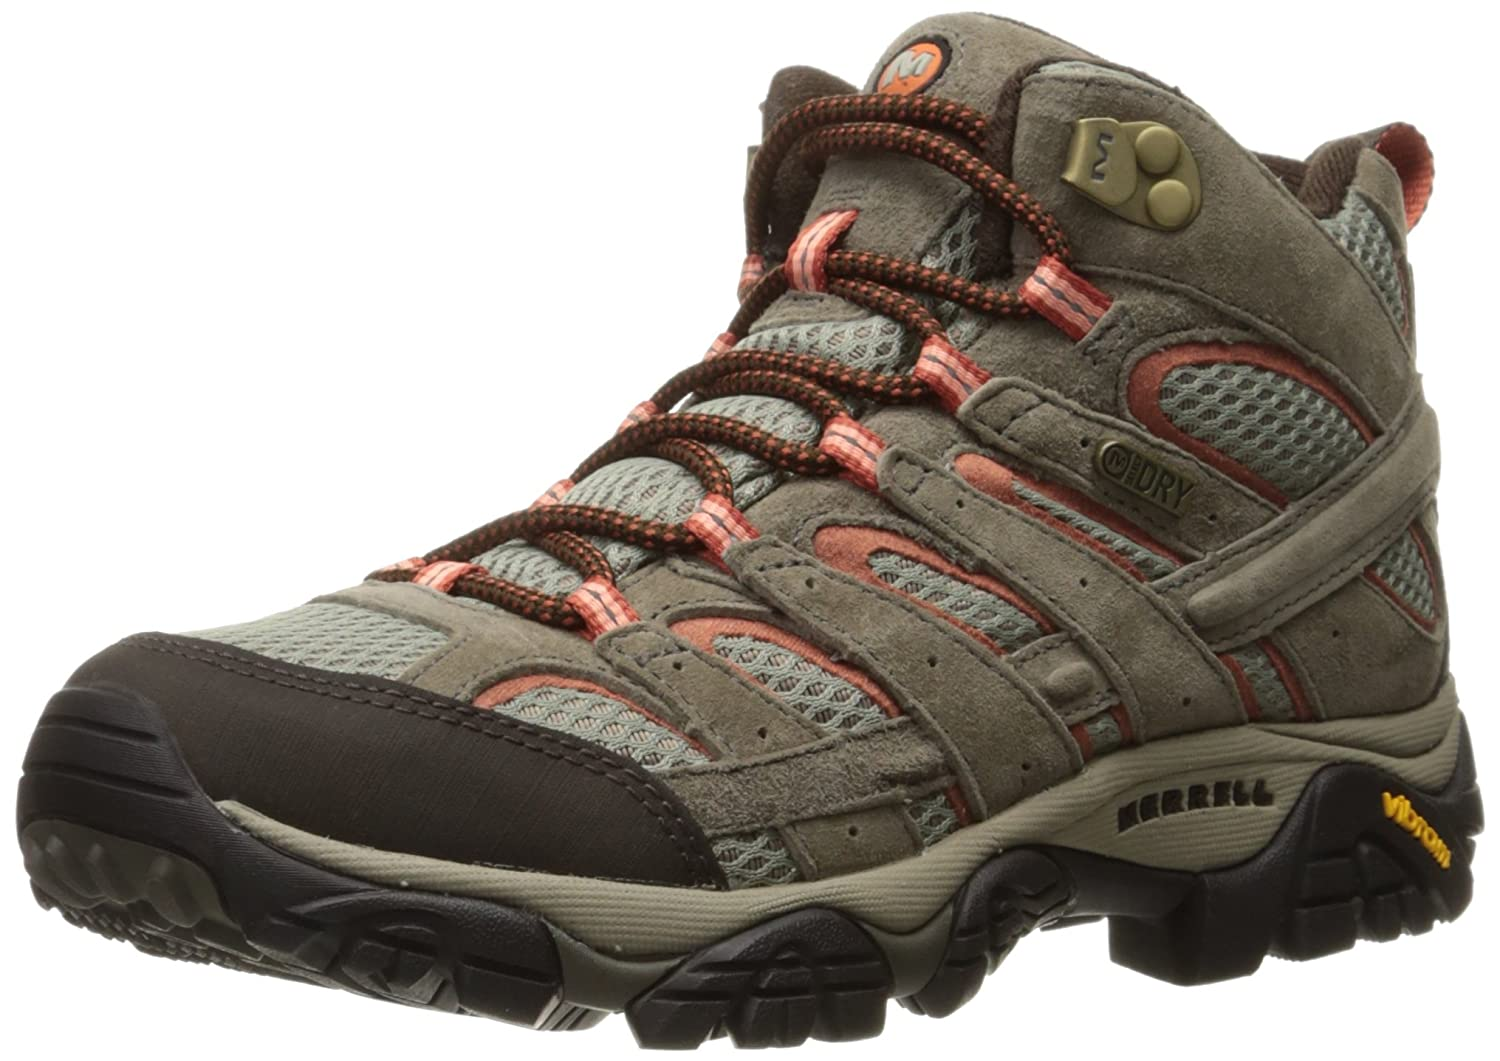 Merrell Women's Moab 2 Mid Waterproof Hiking Boot B01HFL7HZW 8.5 W US|Bungee Cord